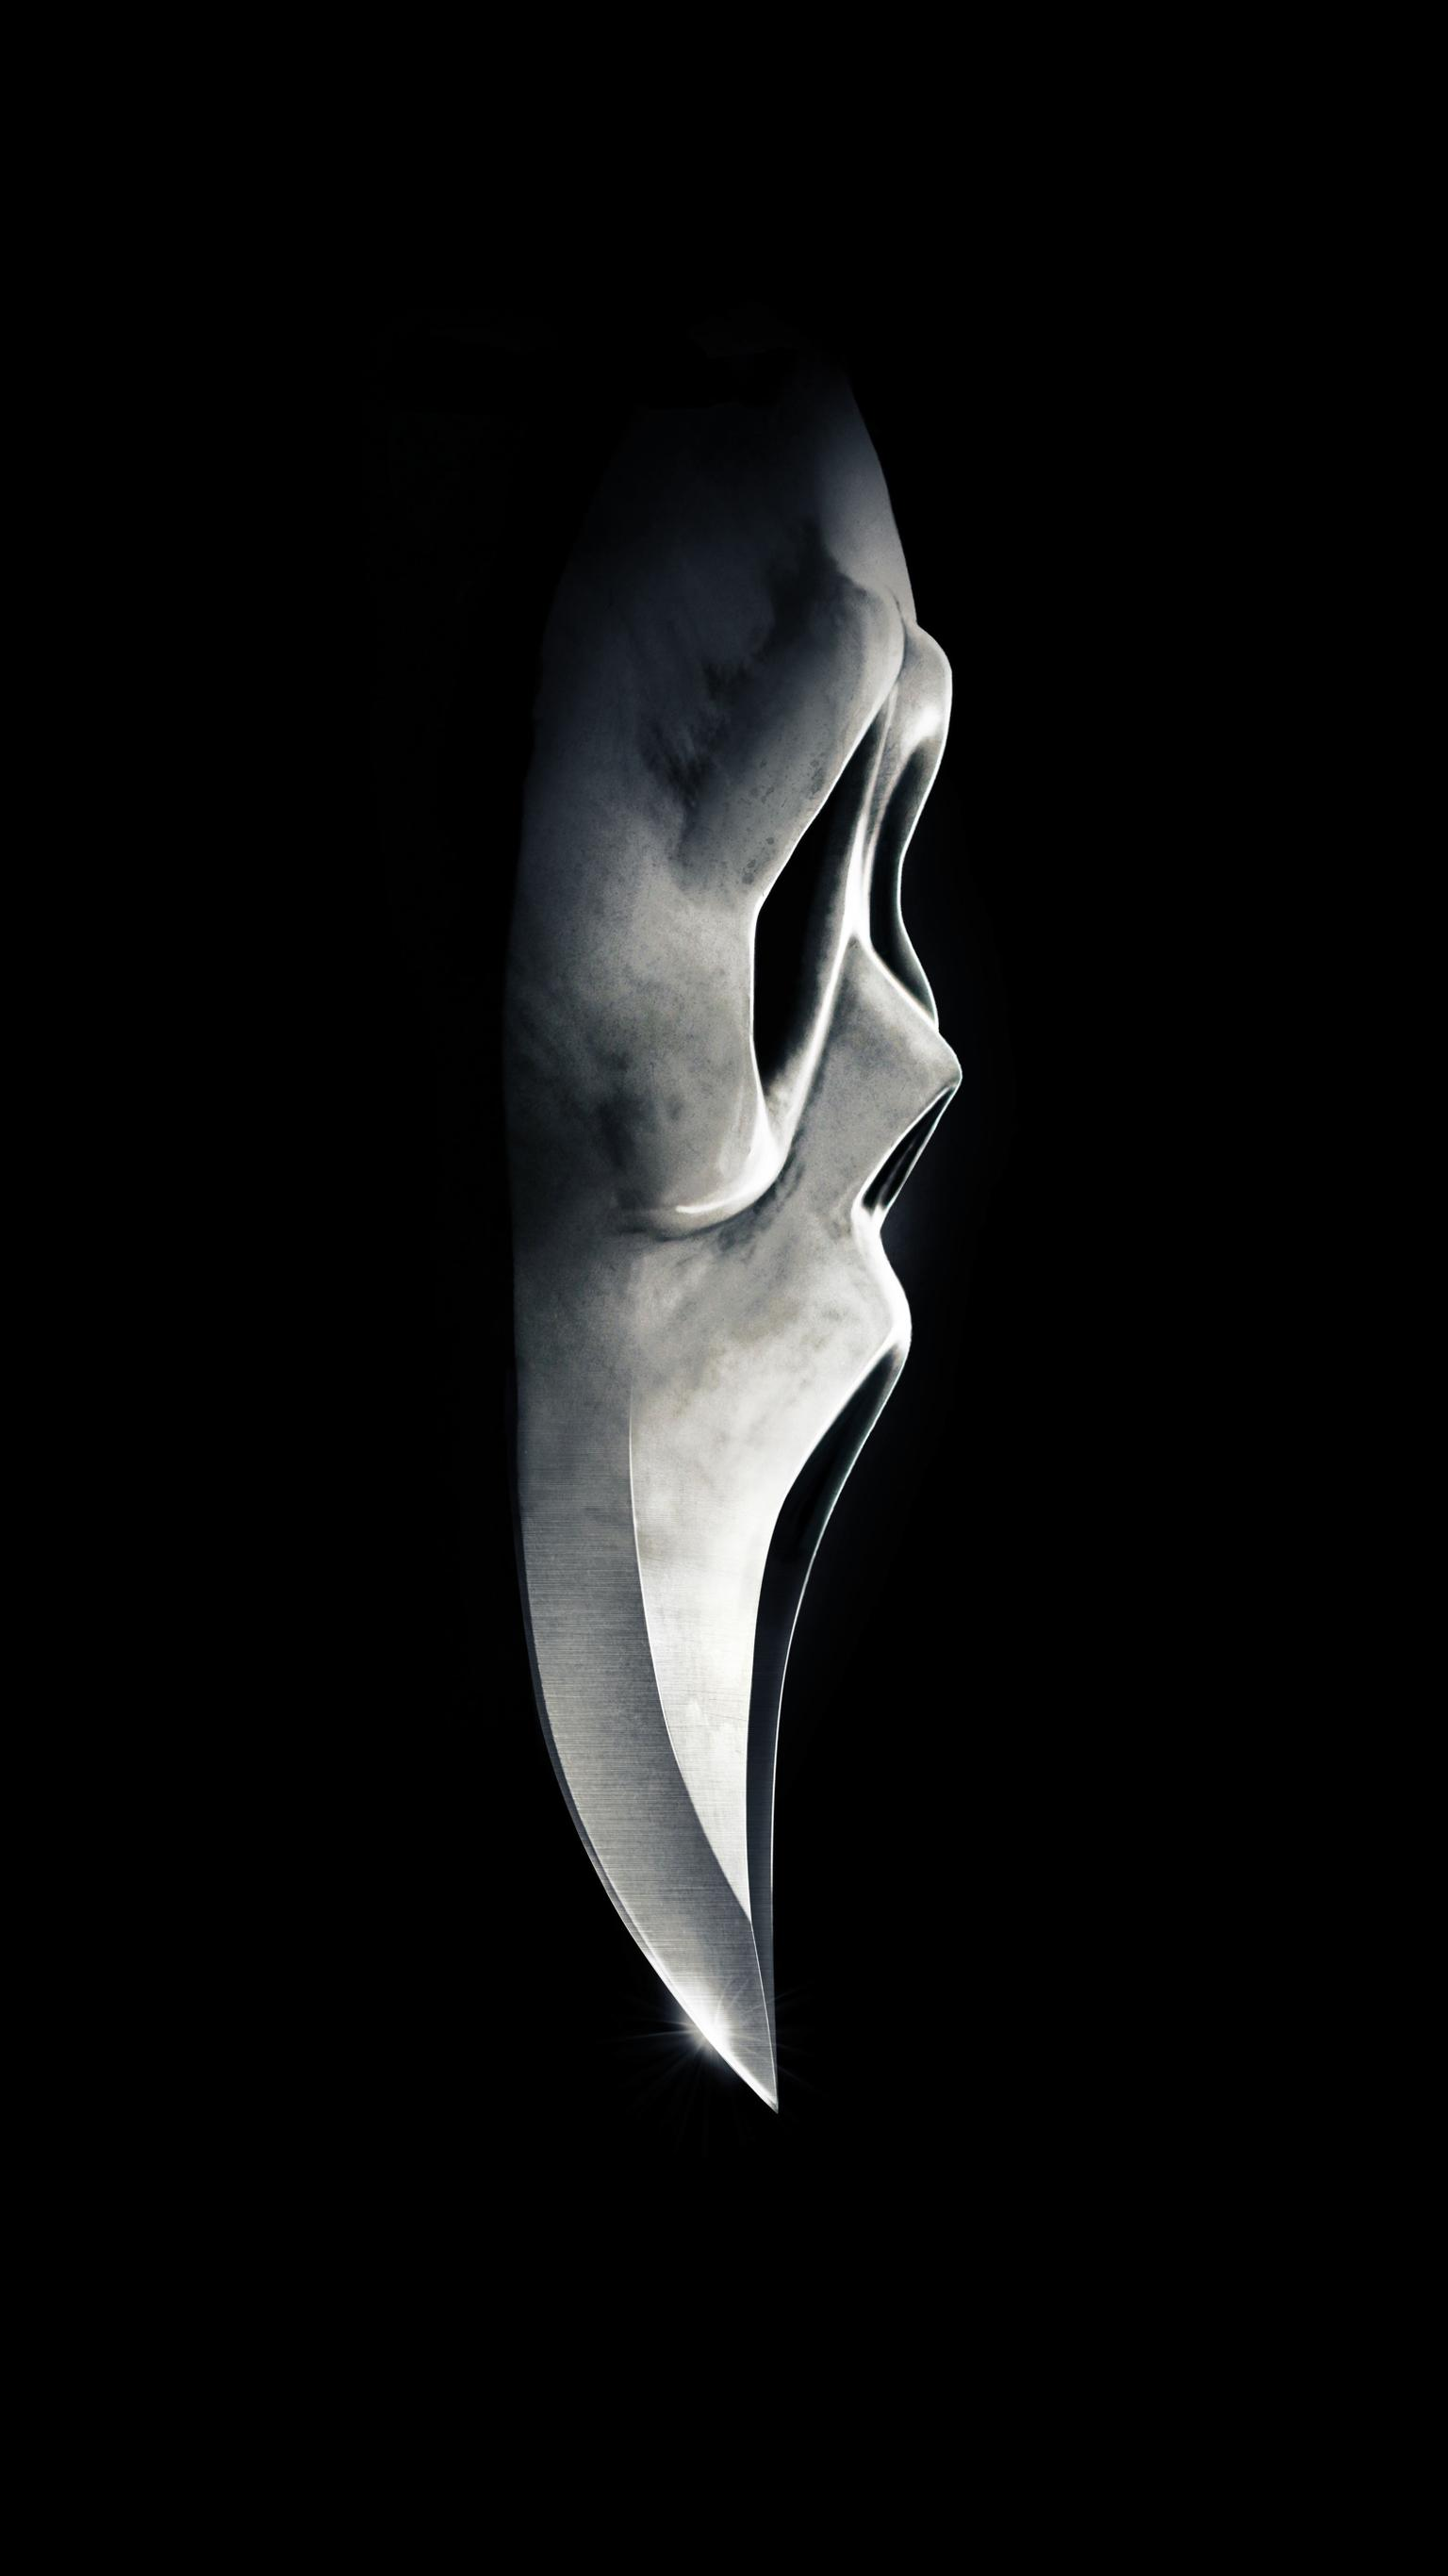 1536x2732 Scream 4 (2011) Phone Wallpaper | Moviemania